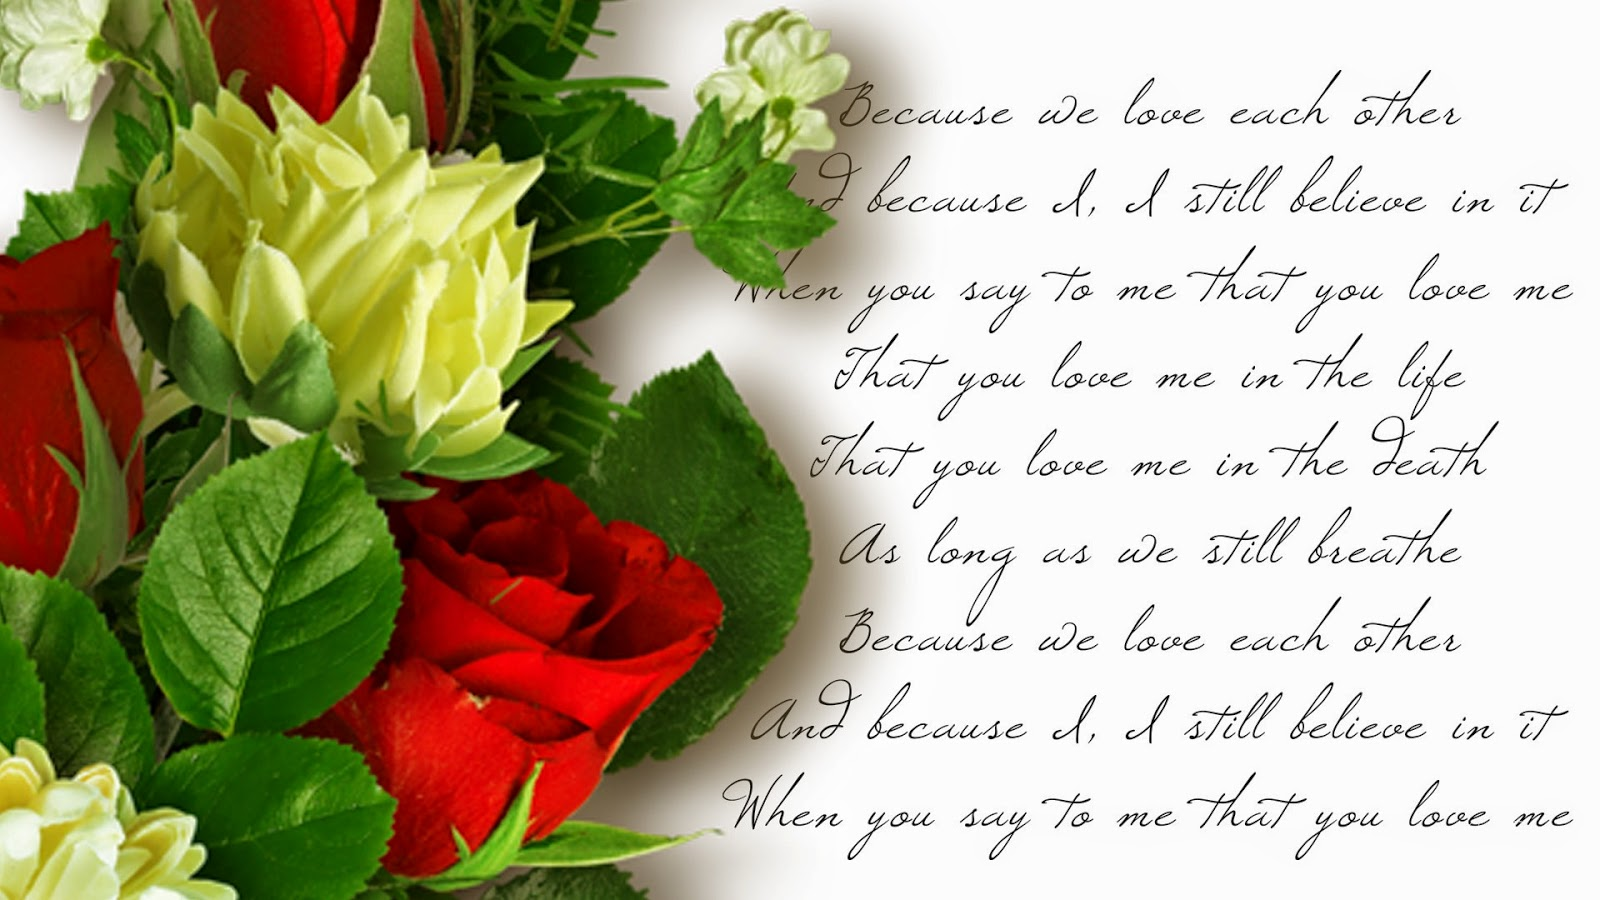 Beautiful love quotes for her with rose flower images amazing love lines unique collection stock photo card izmirmasajfo Choice Image